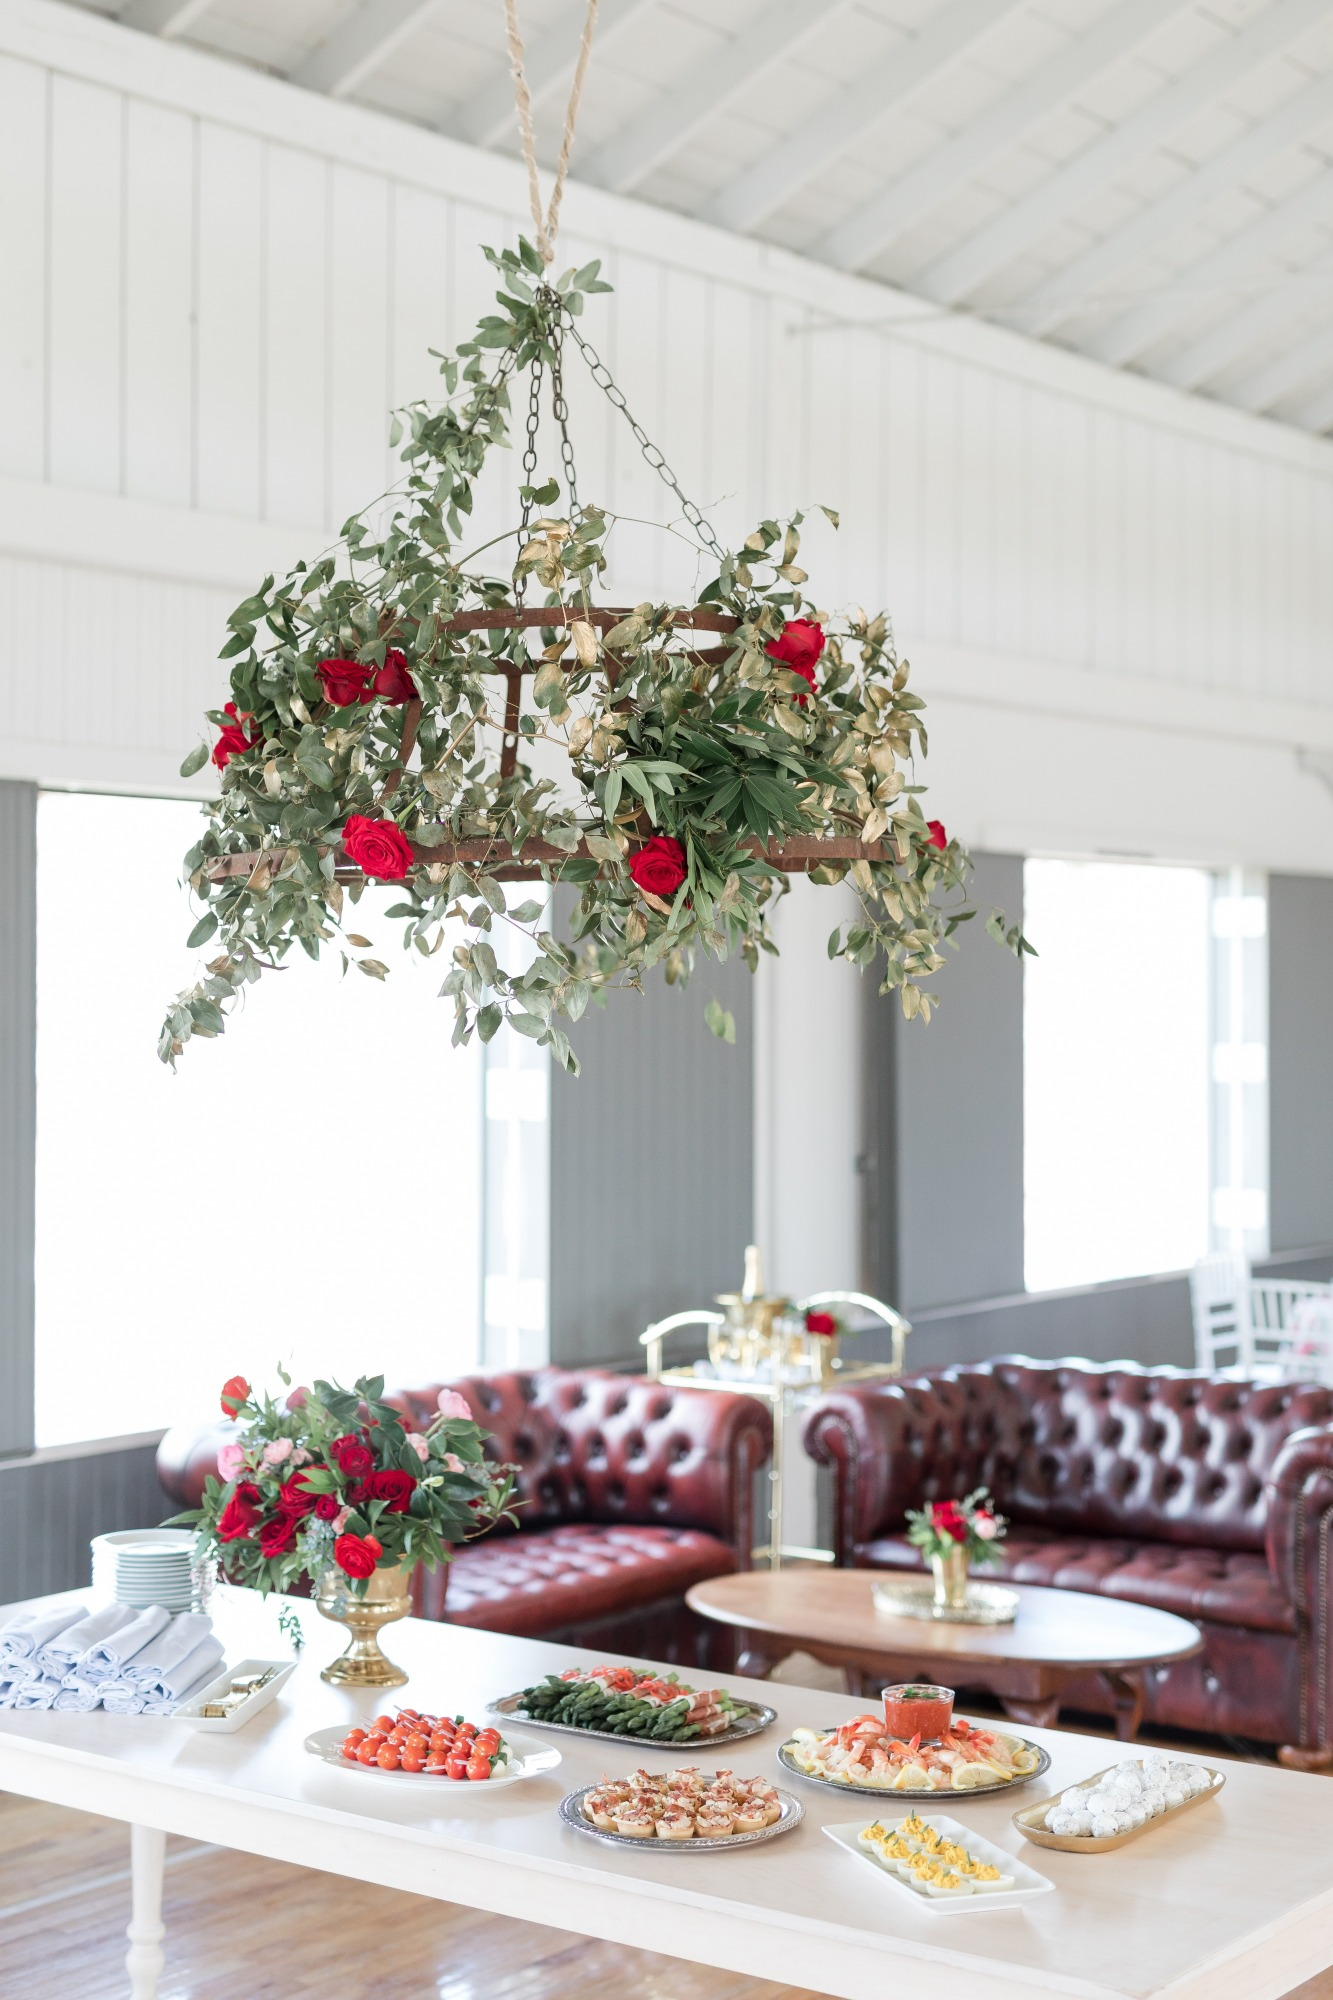 Food Table and Rose Chandelier from Off to the Races Derby Party Styled by Cherry Blossom Events | Black Twine